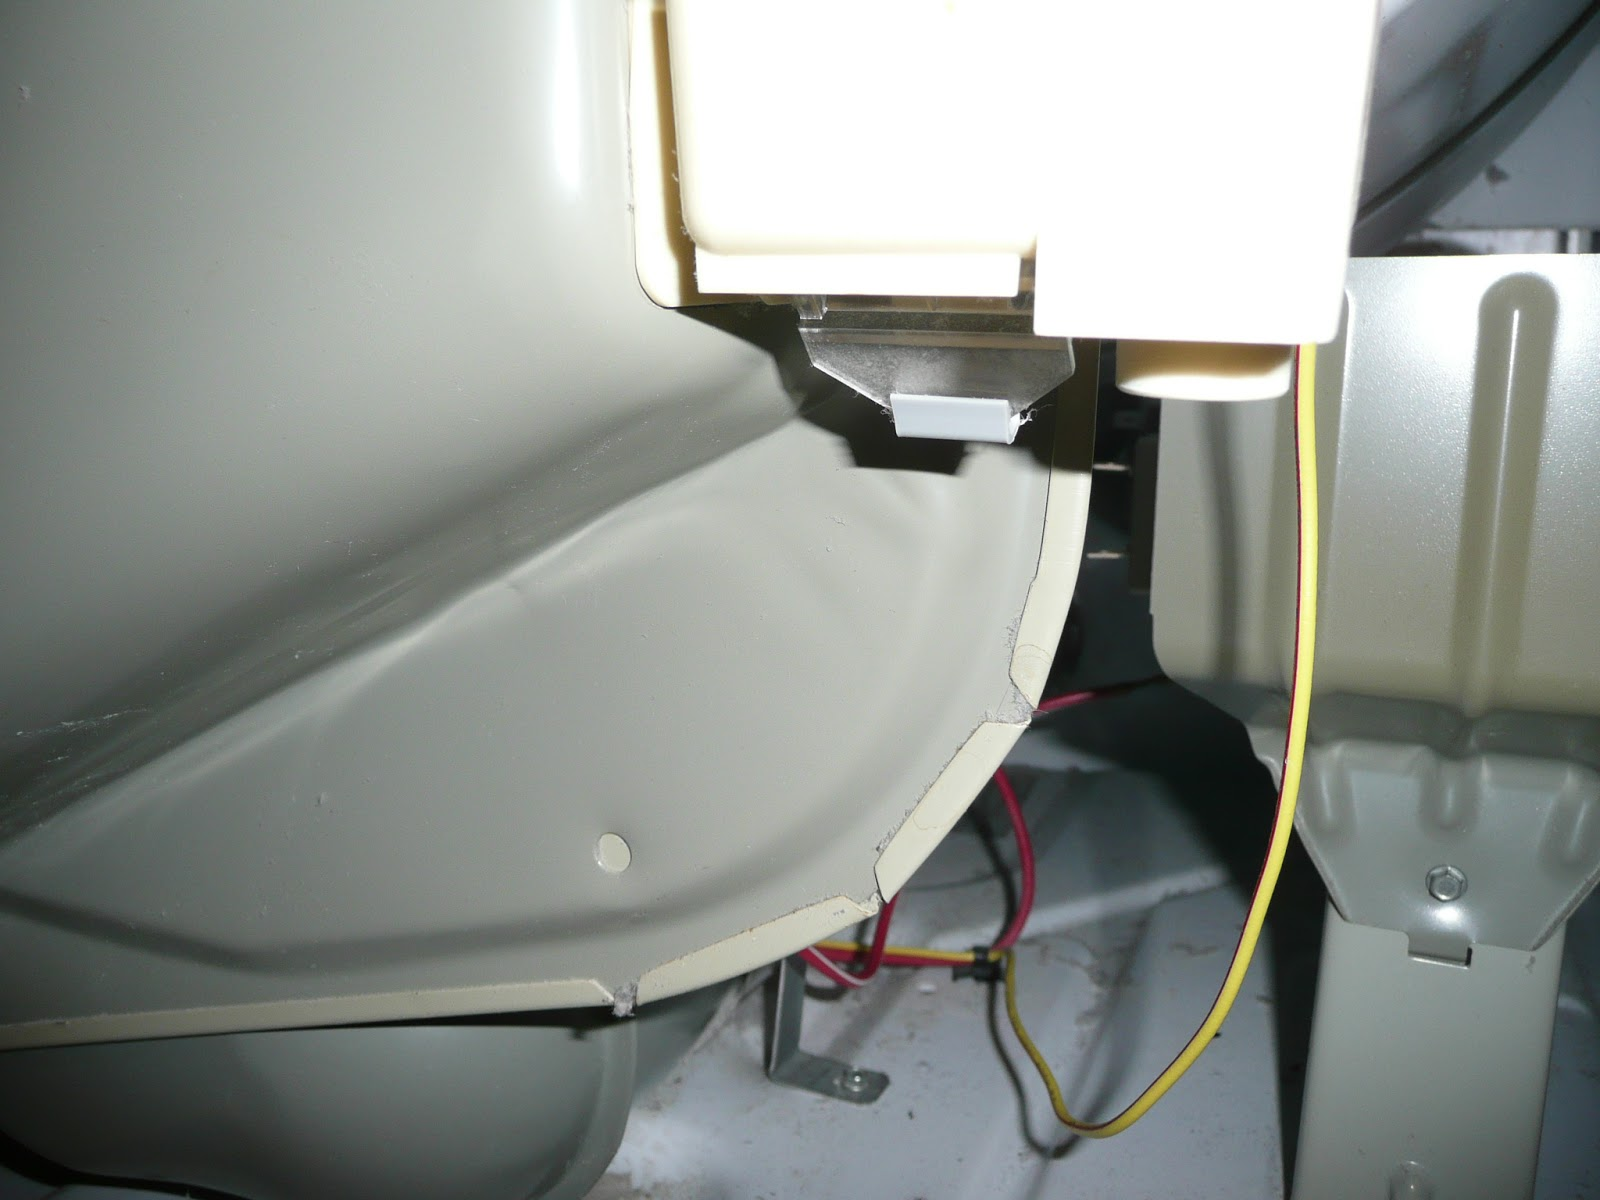 Do It Yourself Kenmore 90 Series Model 110 Clothes Dryer Runs But 2002 Jeep Grand Cherokee 47 Ho Heating Element Fuse Box Diagram Disconnect The Little White Hose From Lint Filtration Housing To Gain Entry Upper Connection As